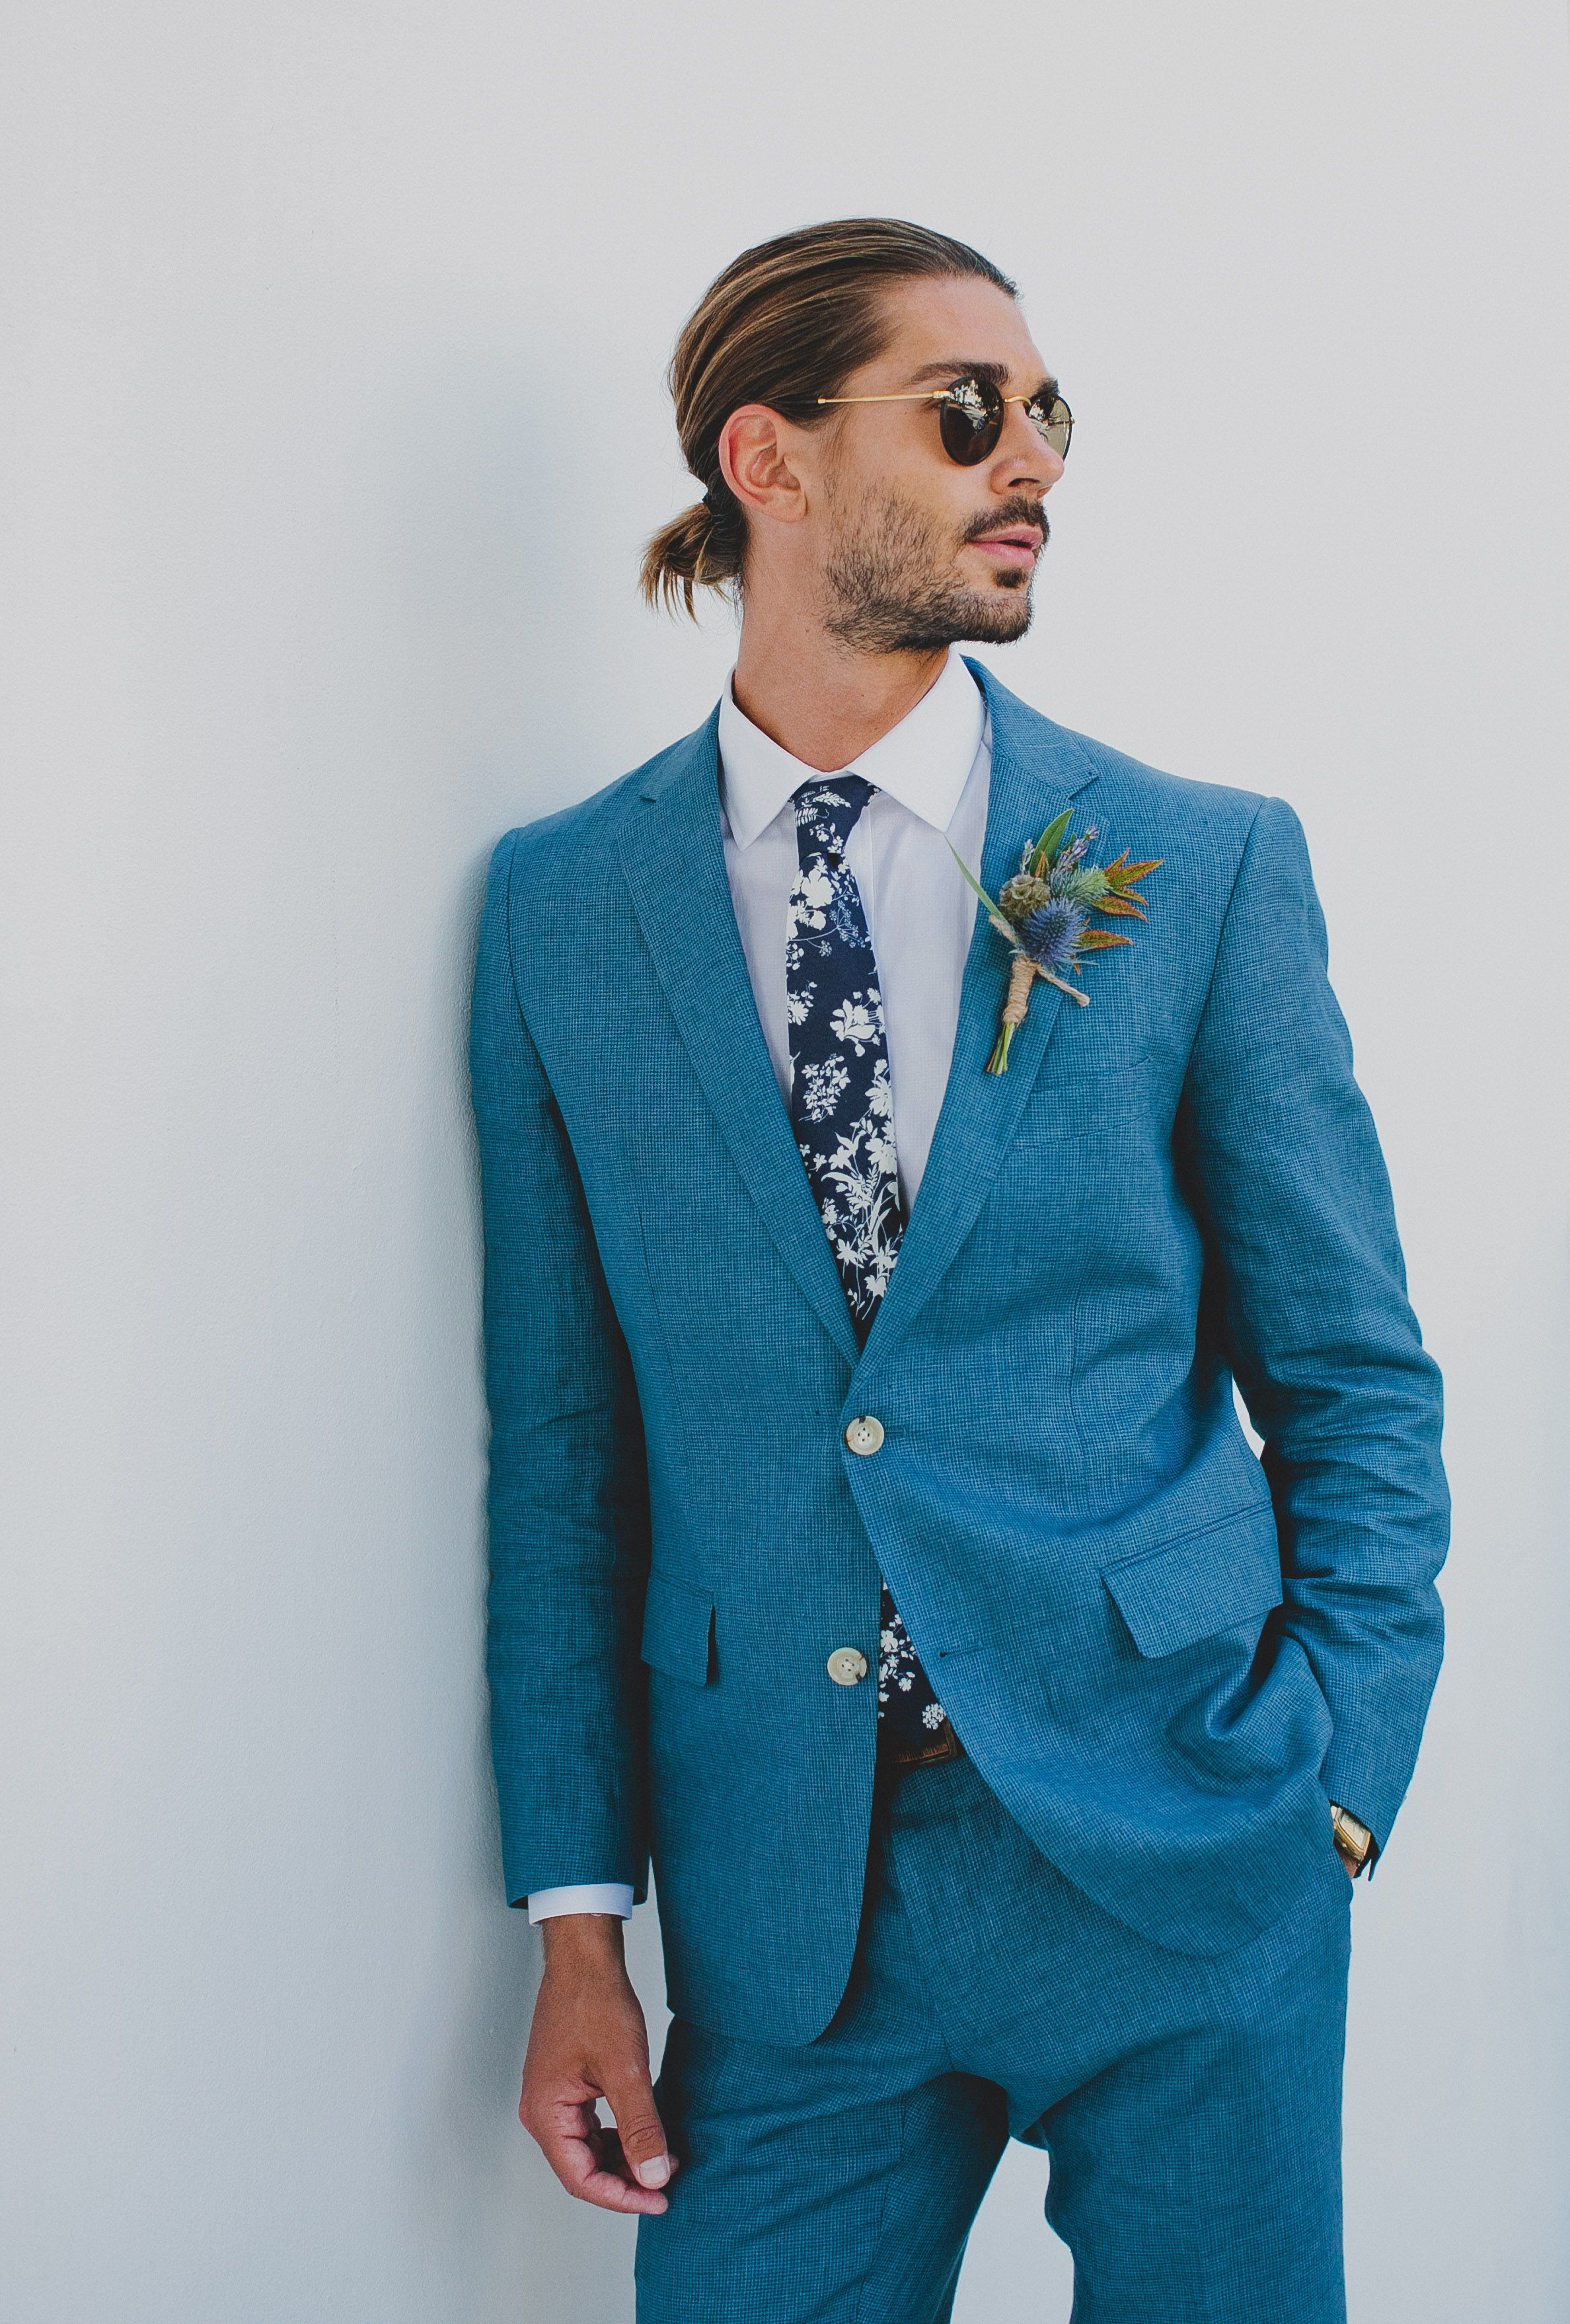 Introducing The GWS x Neck & Tie Company Tie Collection | Green ...